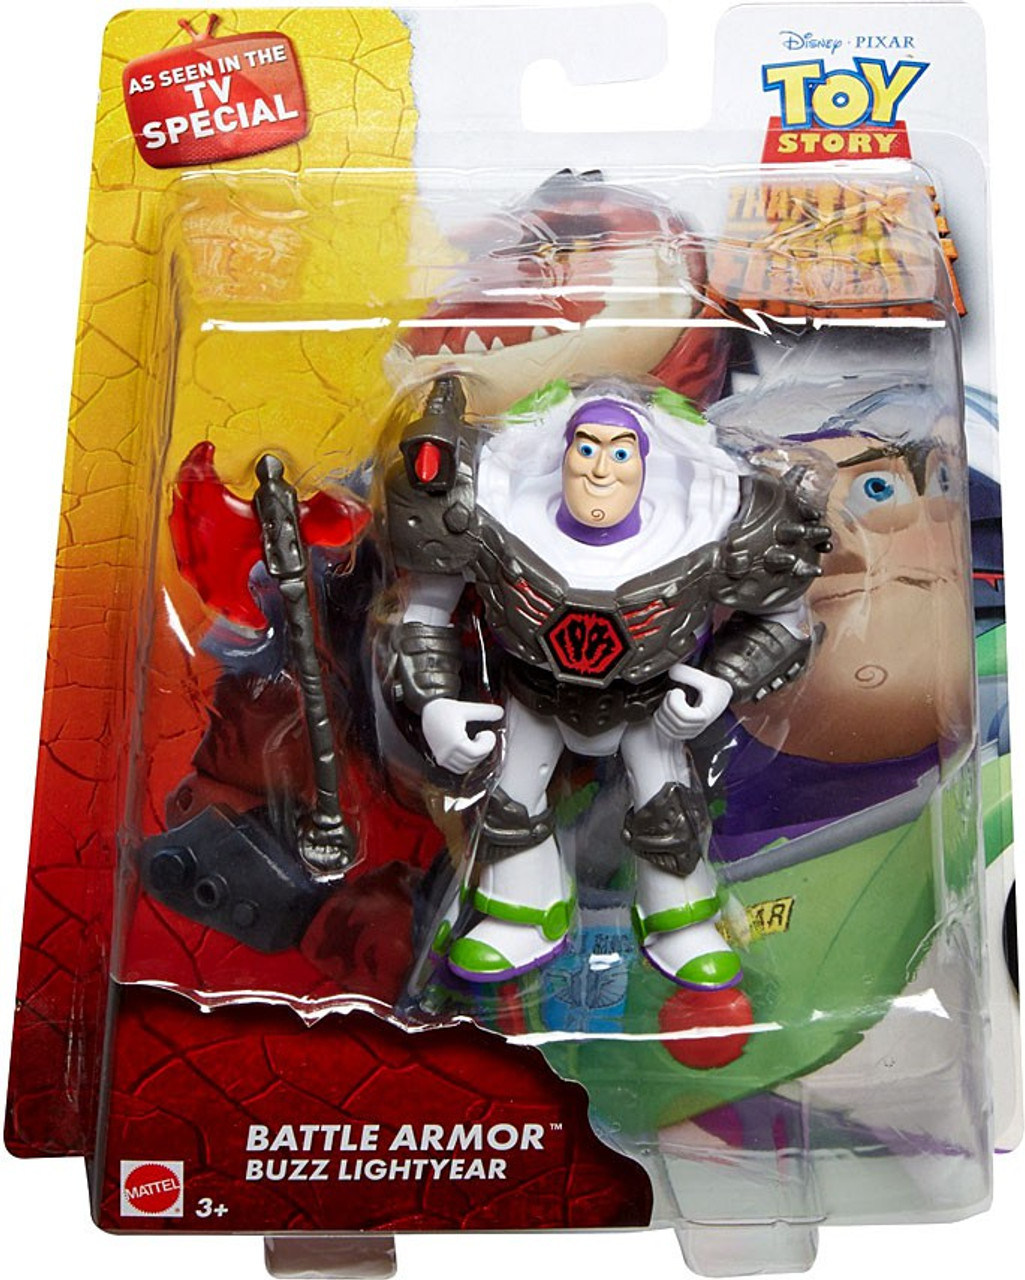 toy story that time forgot battle armor buzz lightyear 5 action